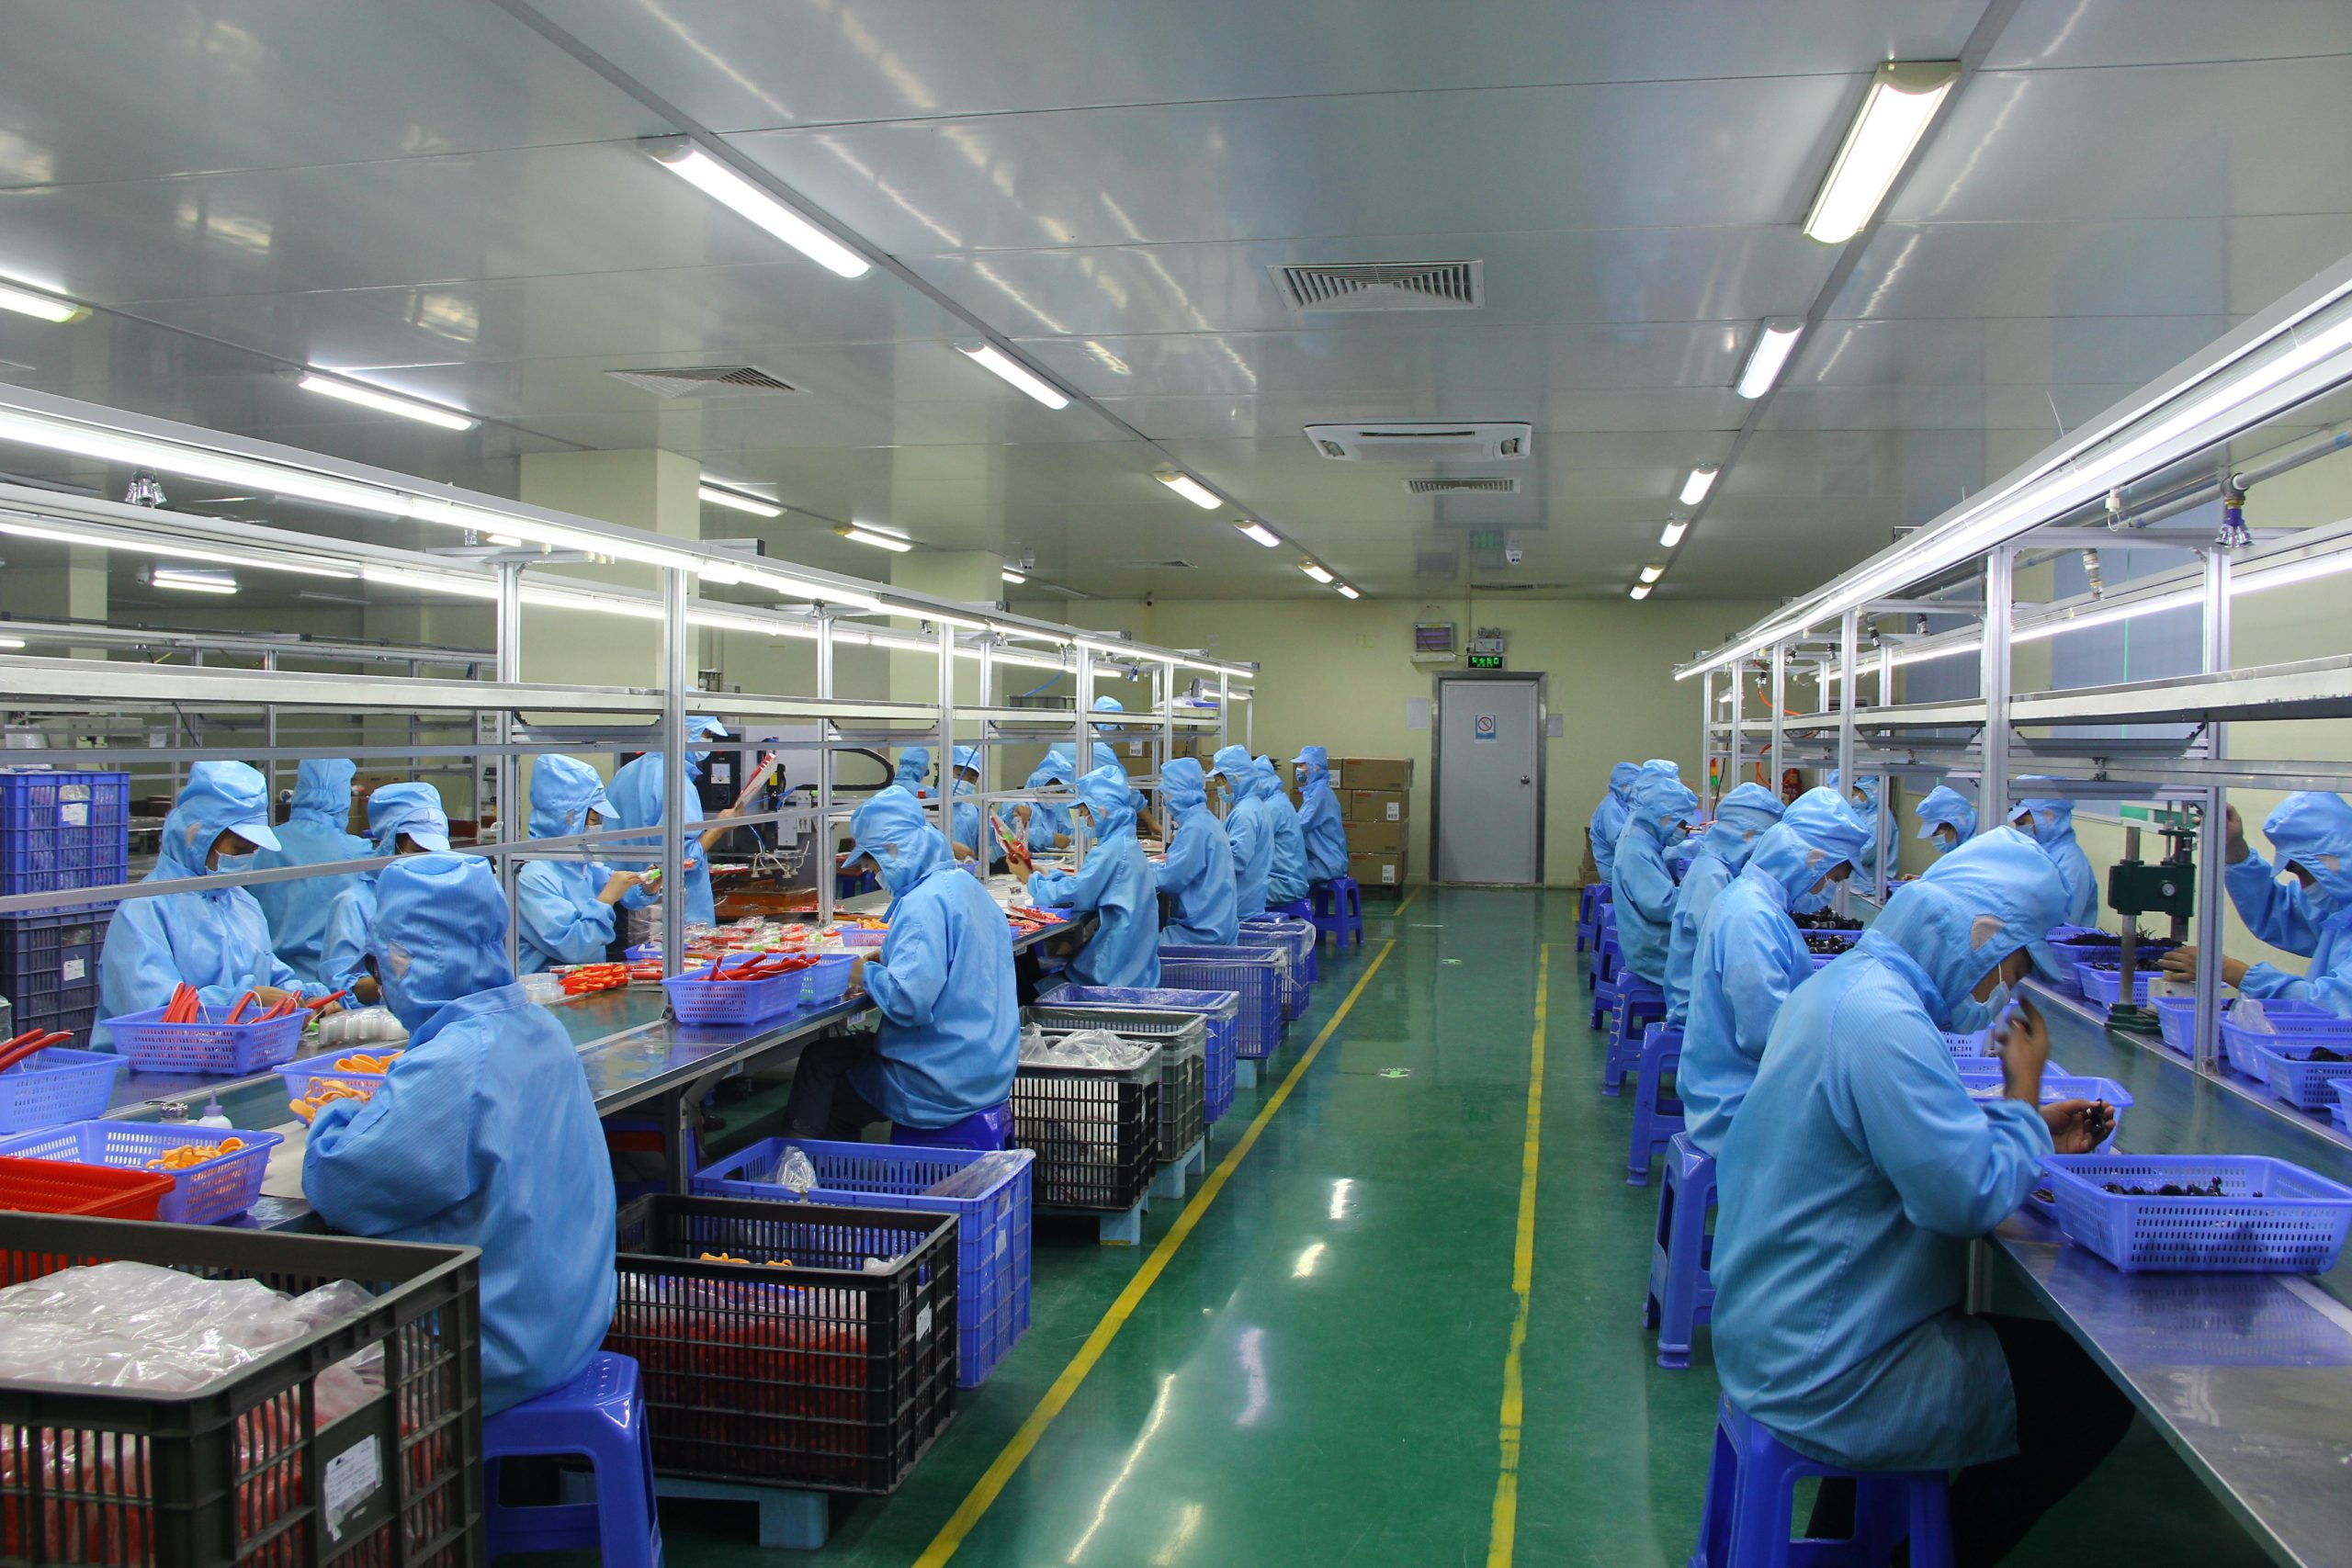 Our food grade dust-free assembling and packaging department.